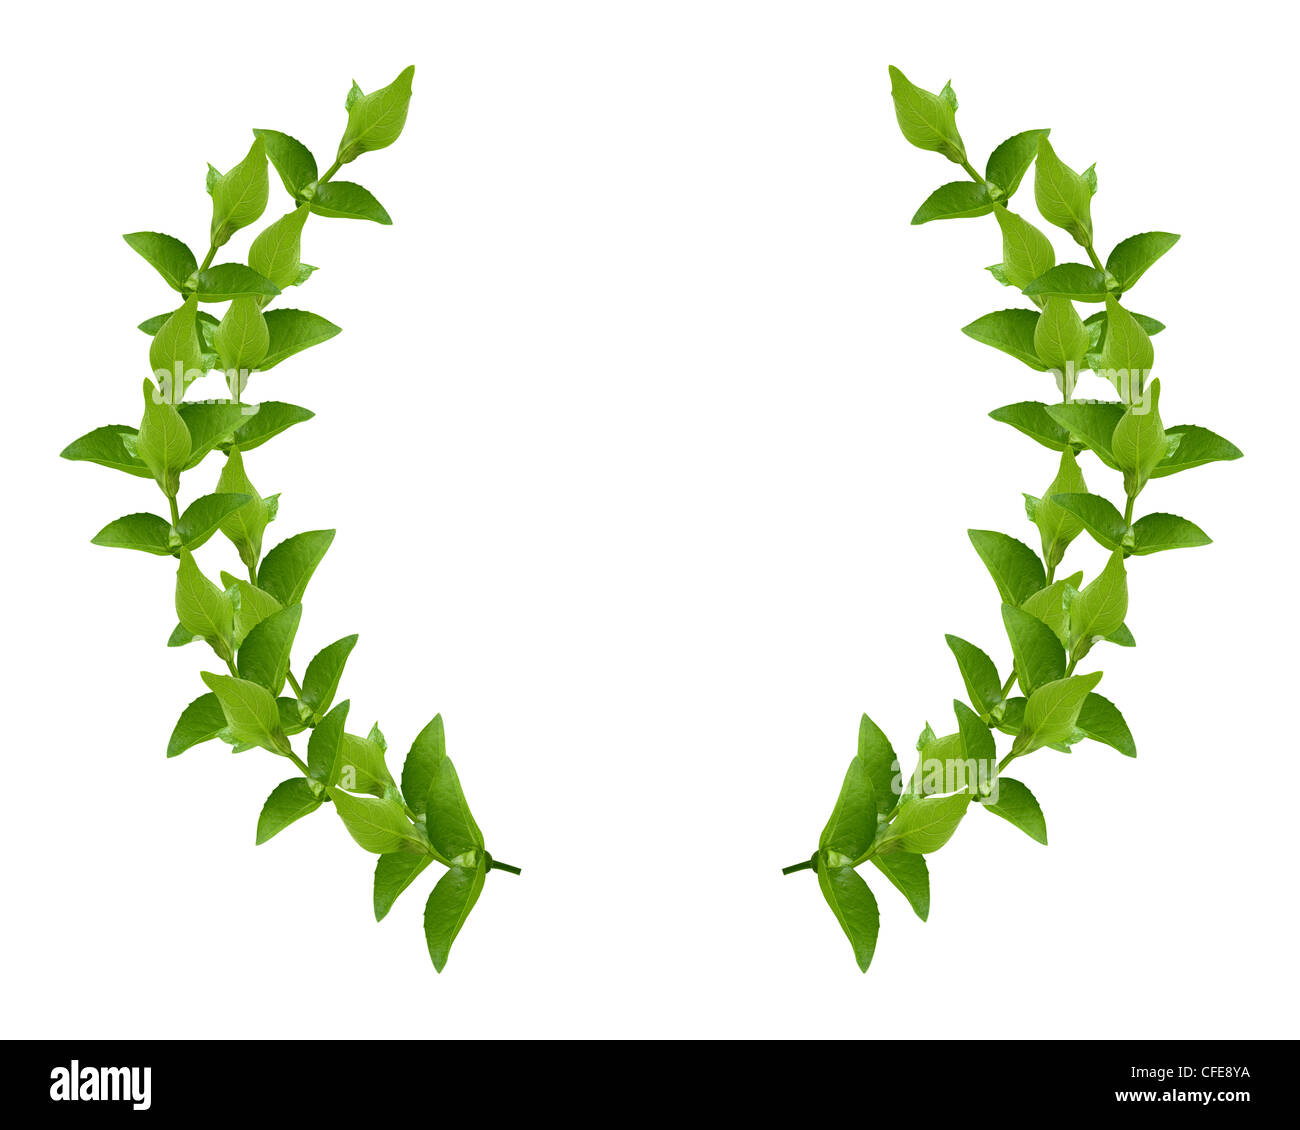 Laurel Wreath made by fresh Green leaves isolated on white, - Stock Image